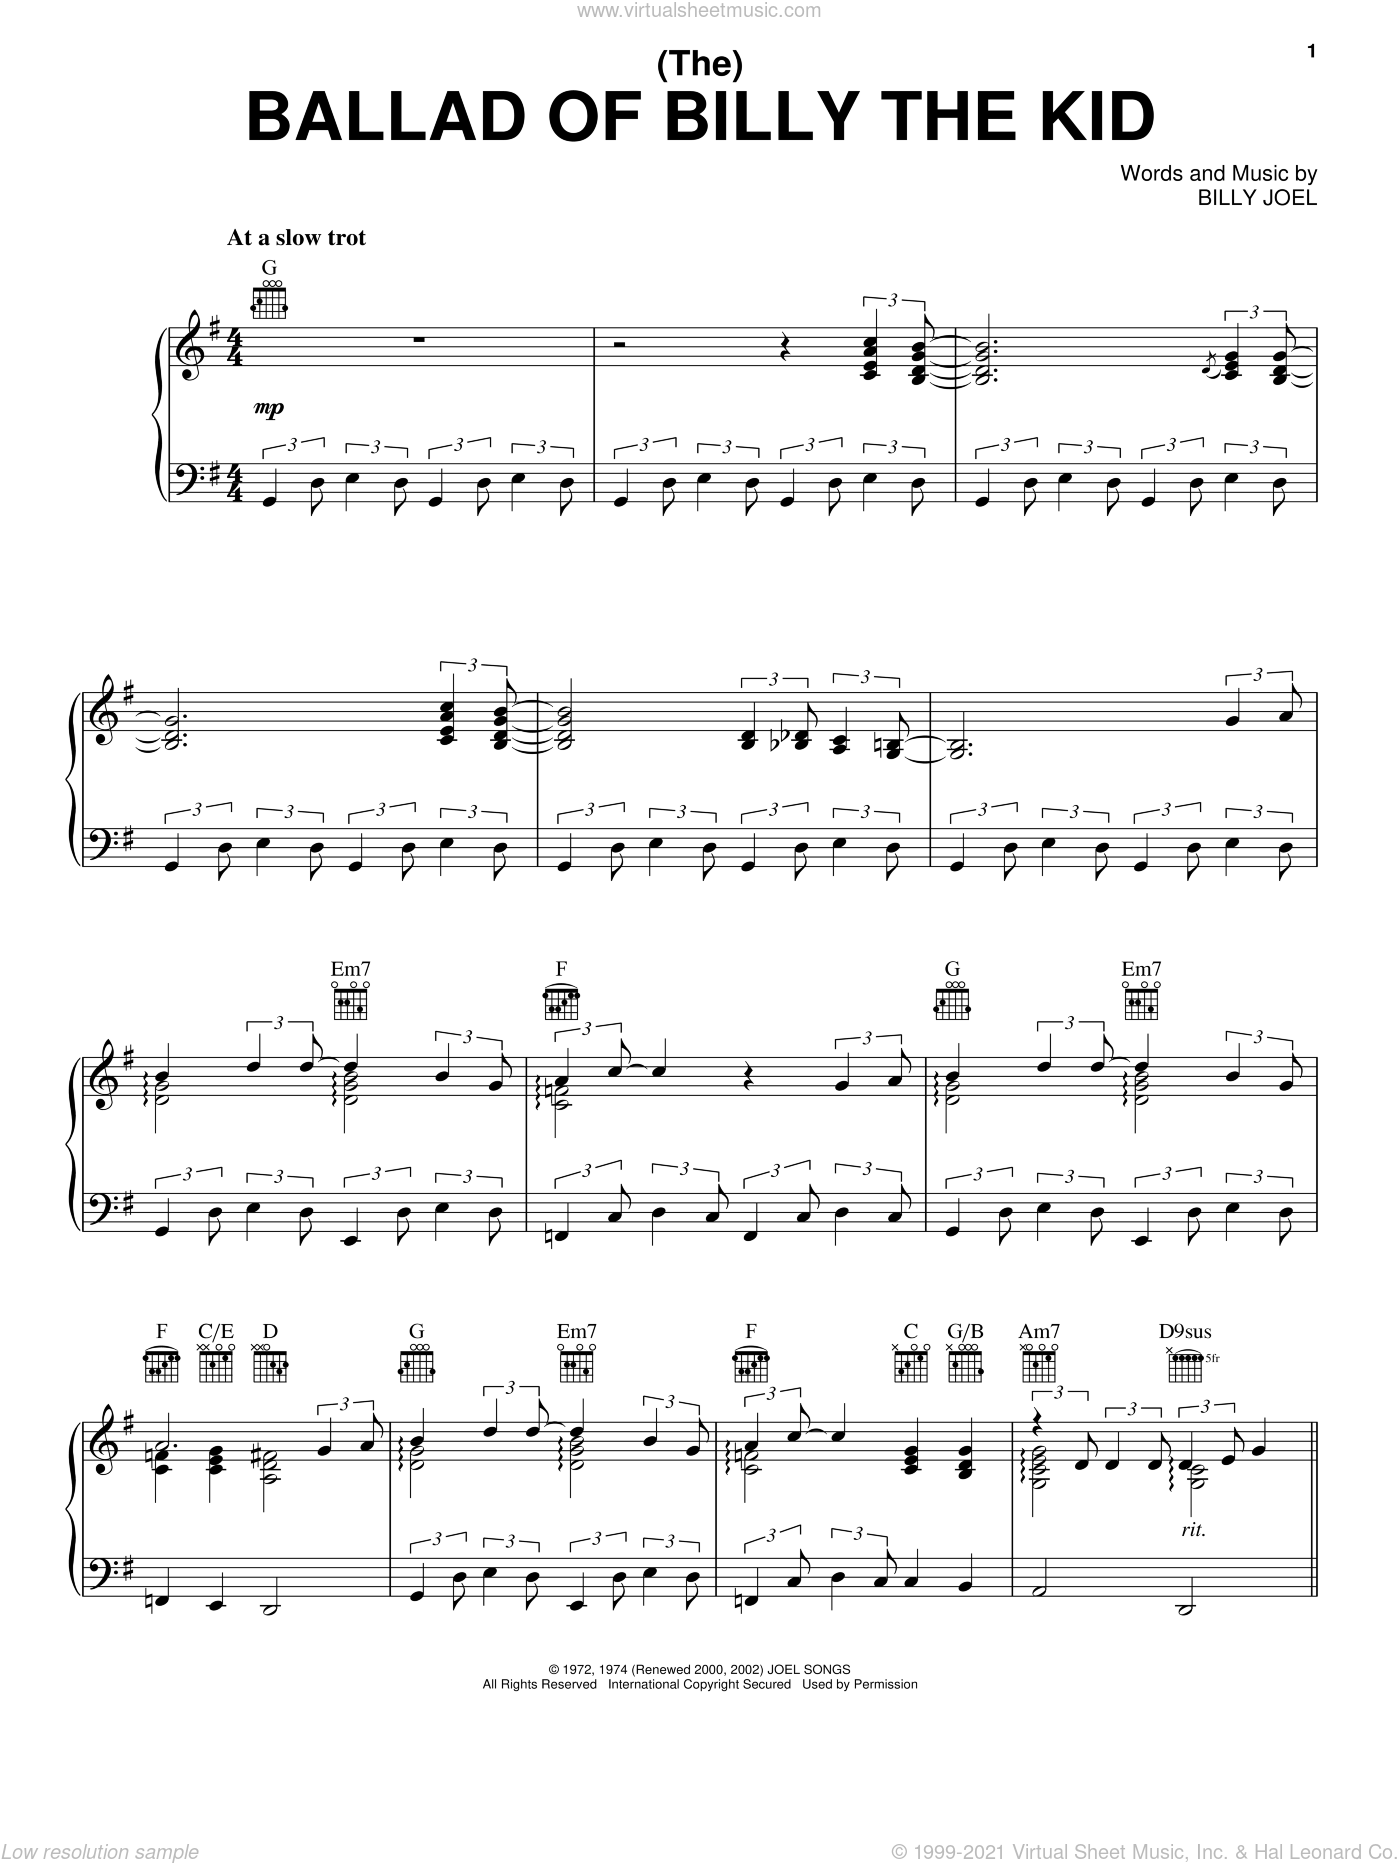 (The) Ballad Of Billy The Kid sheet music for voice, piano or guitar by Billy Joel, intermediate. Score Image Preview.